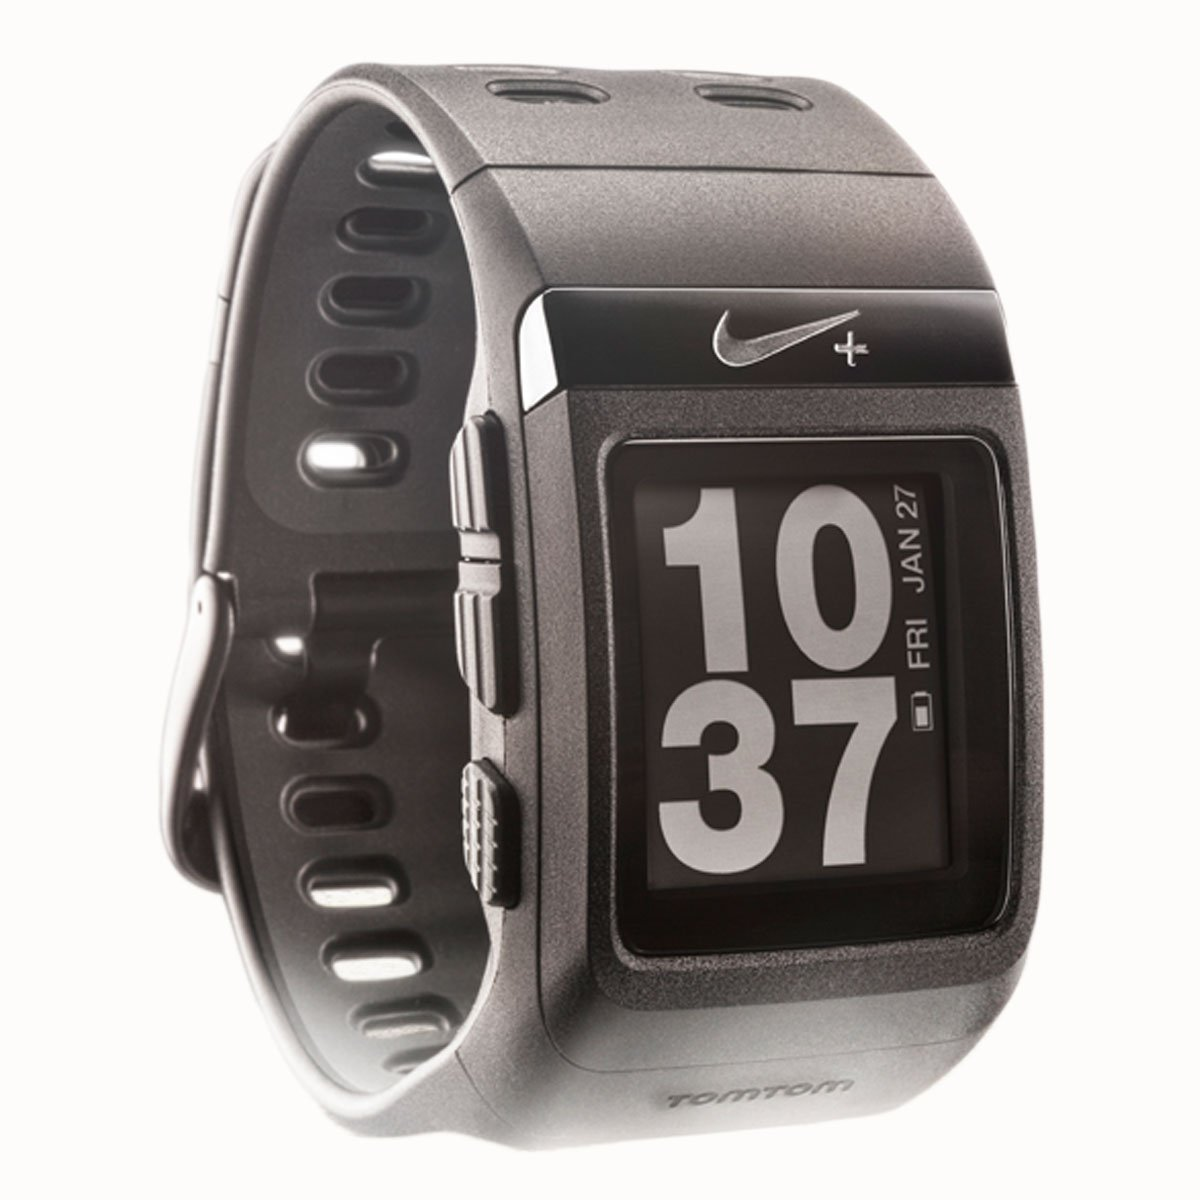 amazon com nike sportwatch gps powered by tomtom black sports amazon com nike sportwatch gps powered by tomtom black sports outdoors